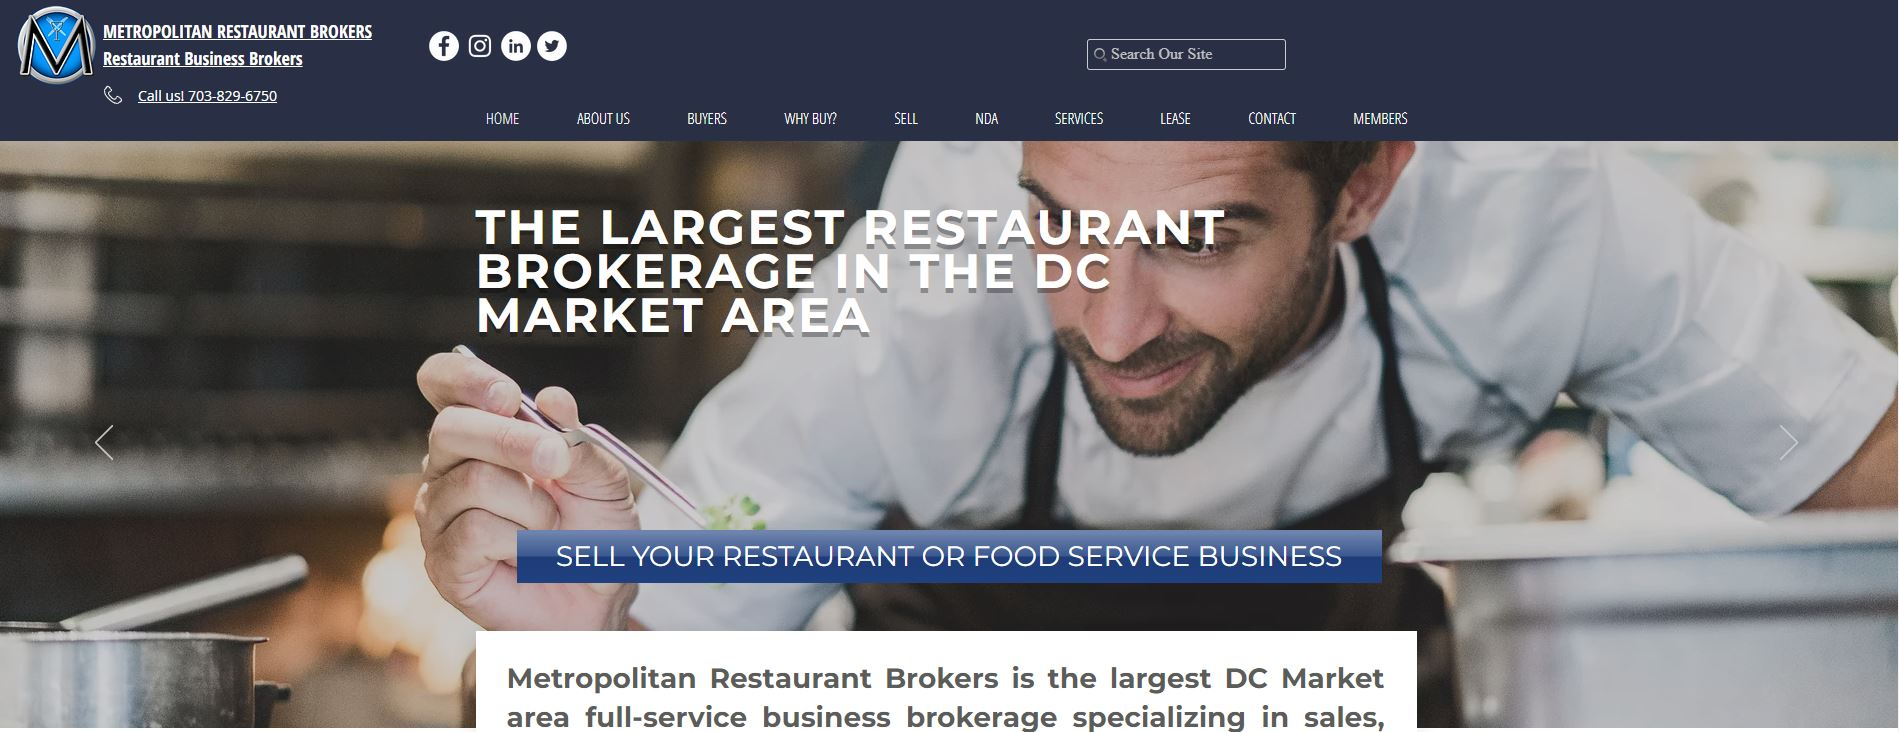 Metropolitan Restaurant Brokers